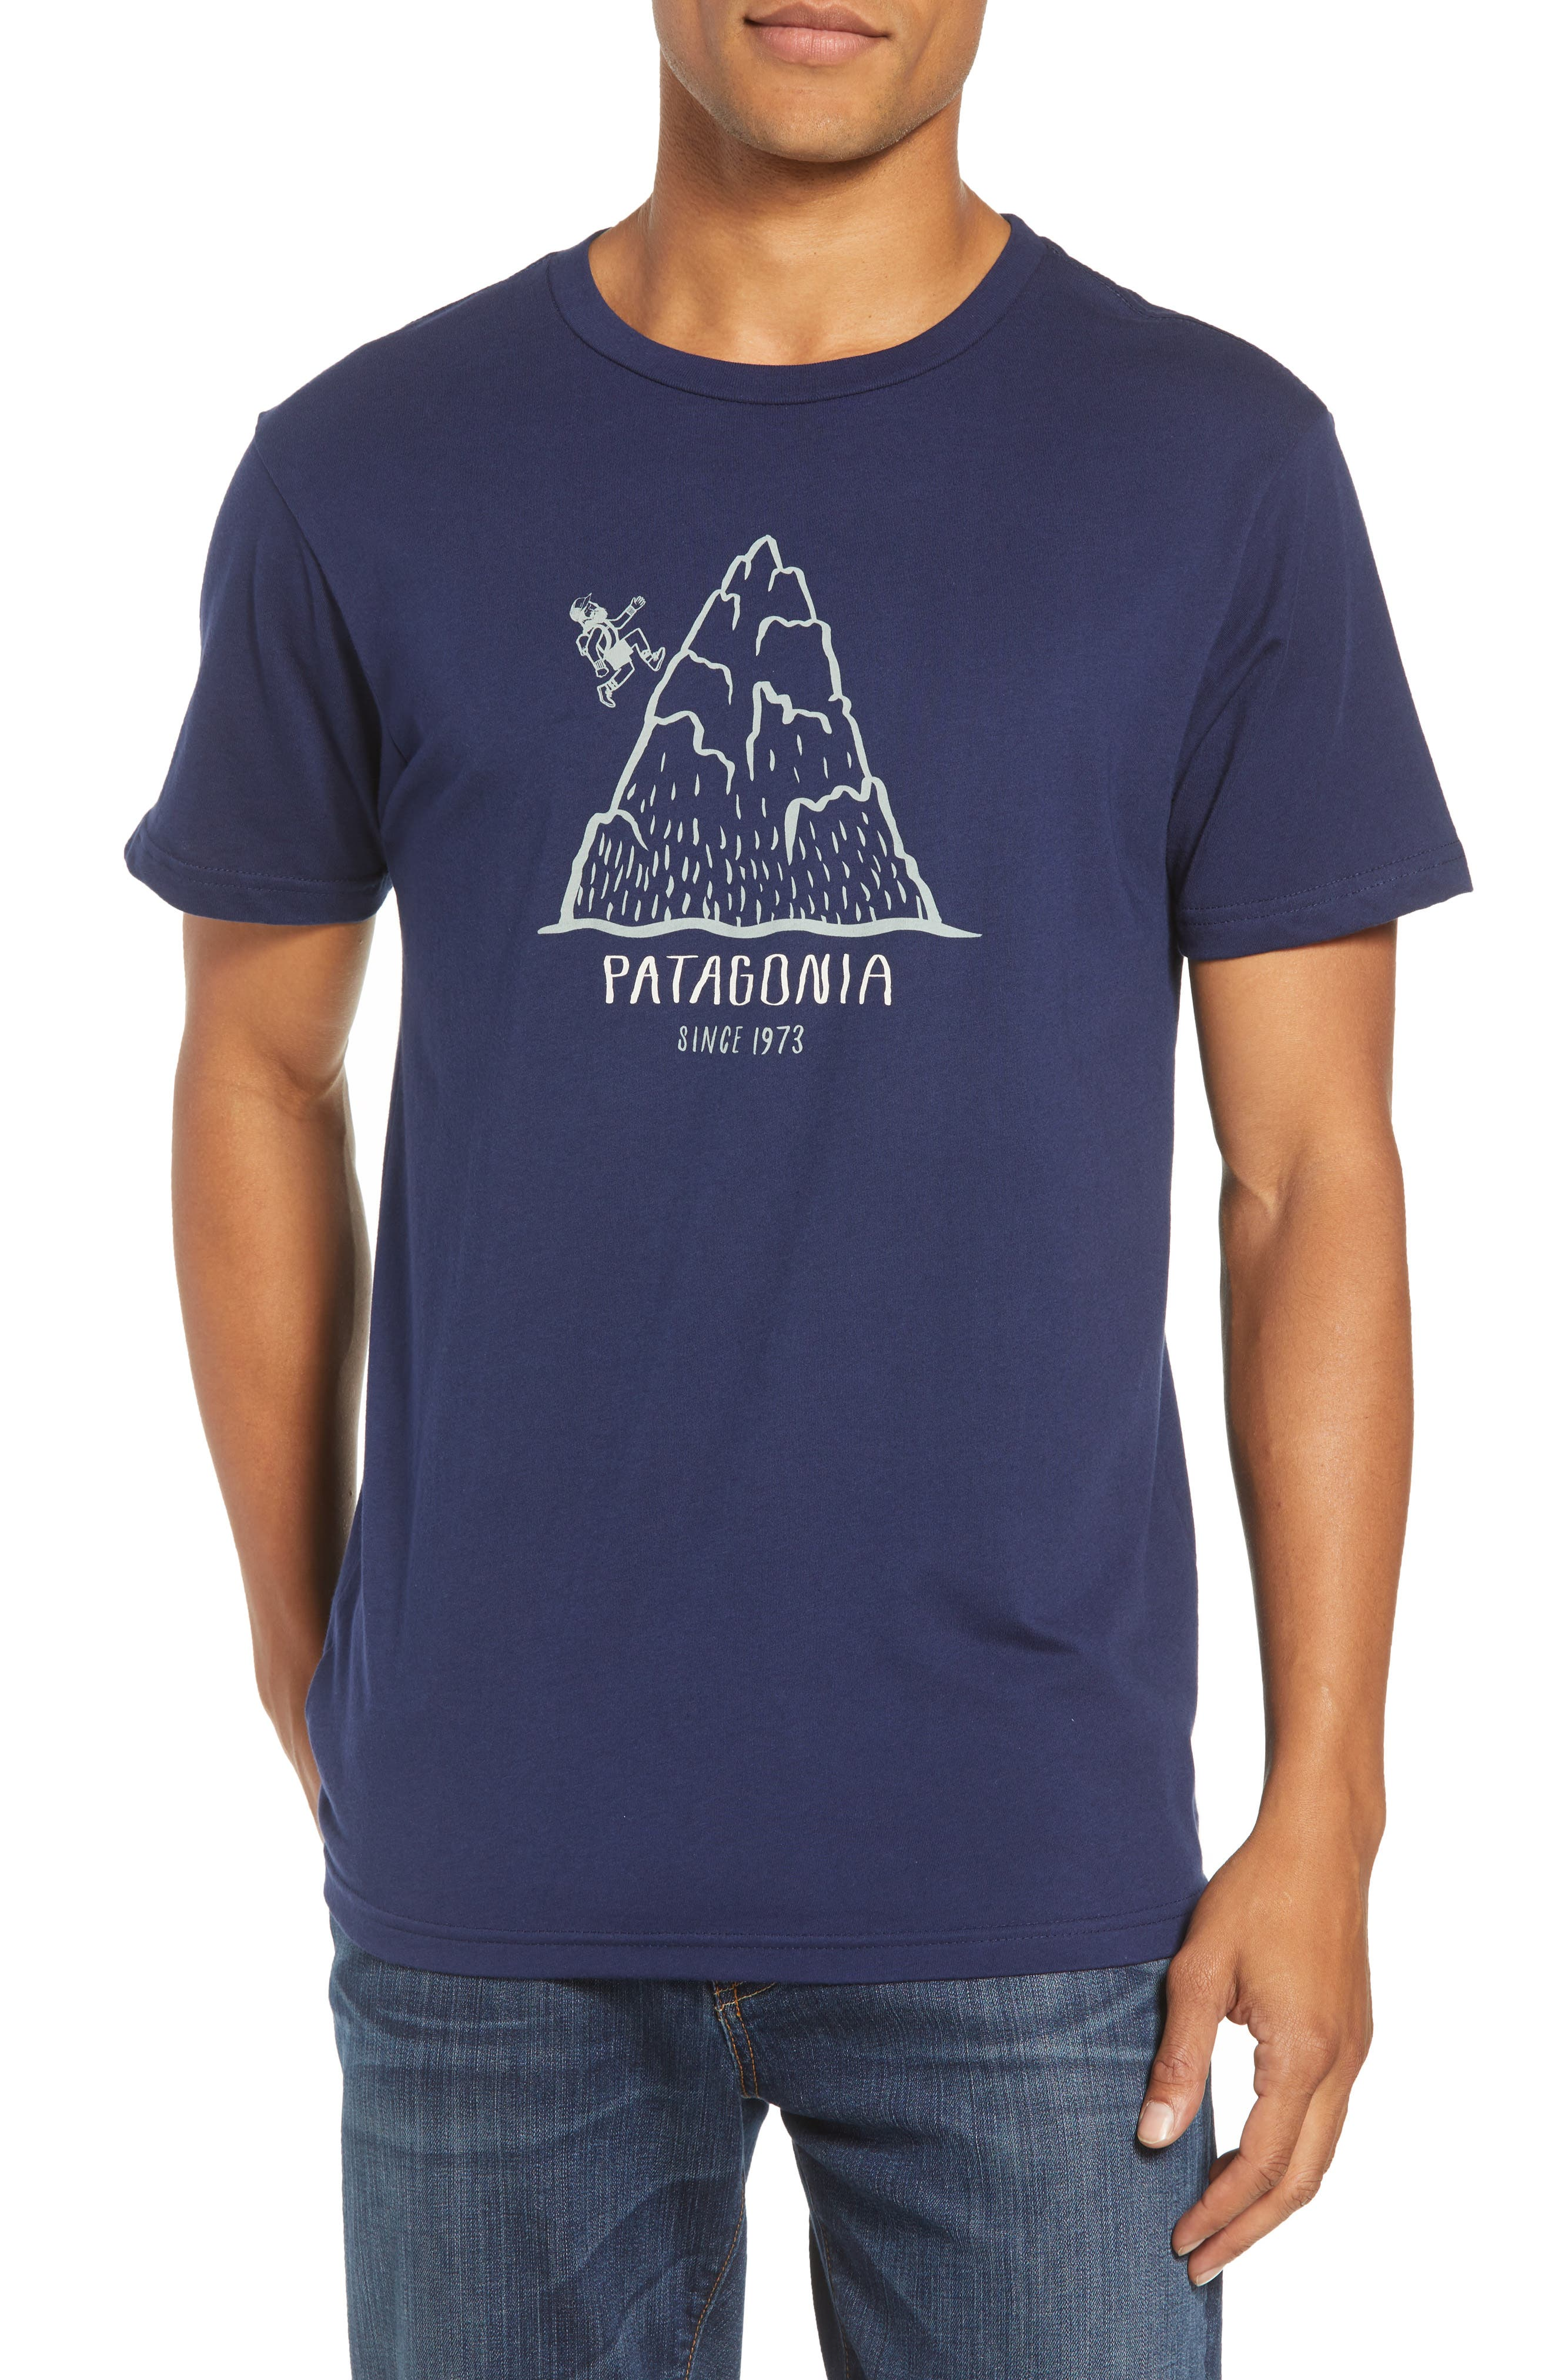 Hoofin It Organic Cotton Graphic T-Shirt,                         Main,                         color, CLASSIC NAVY